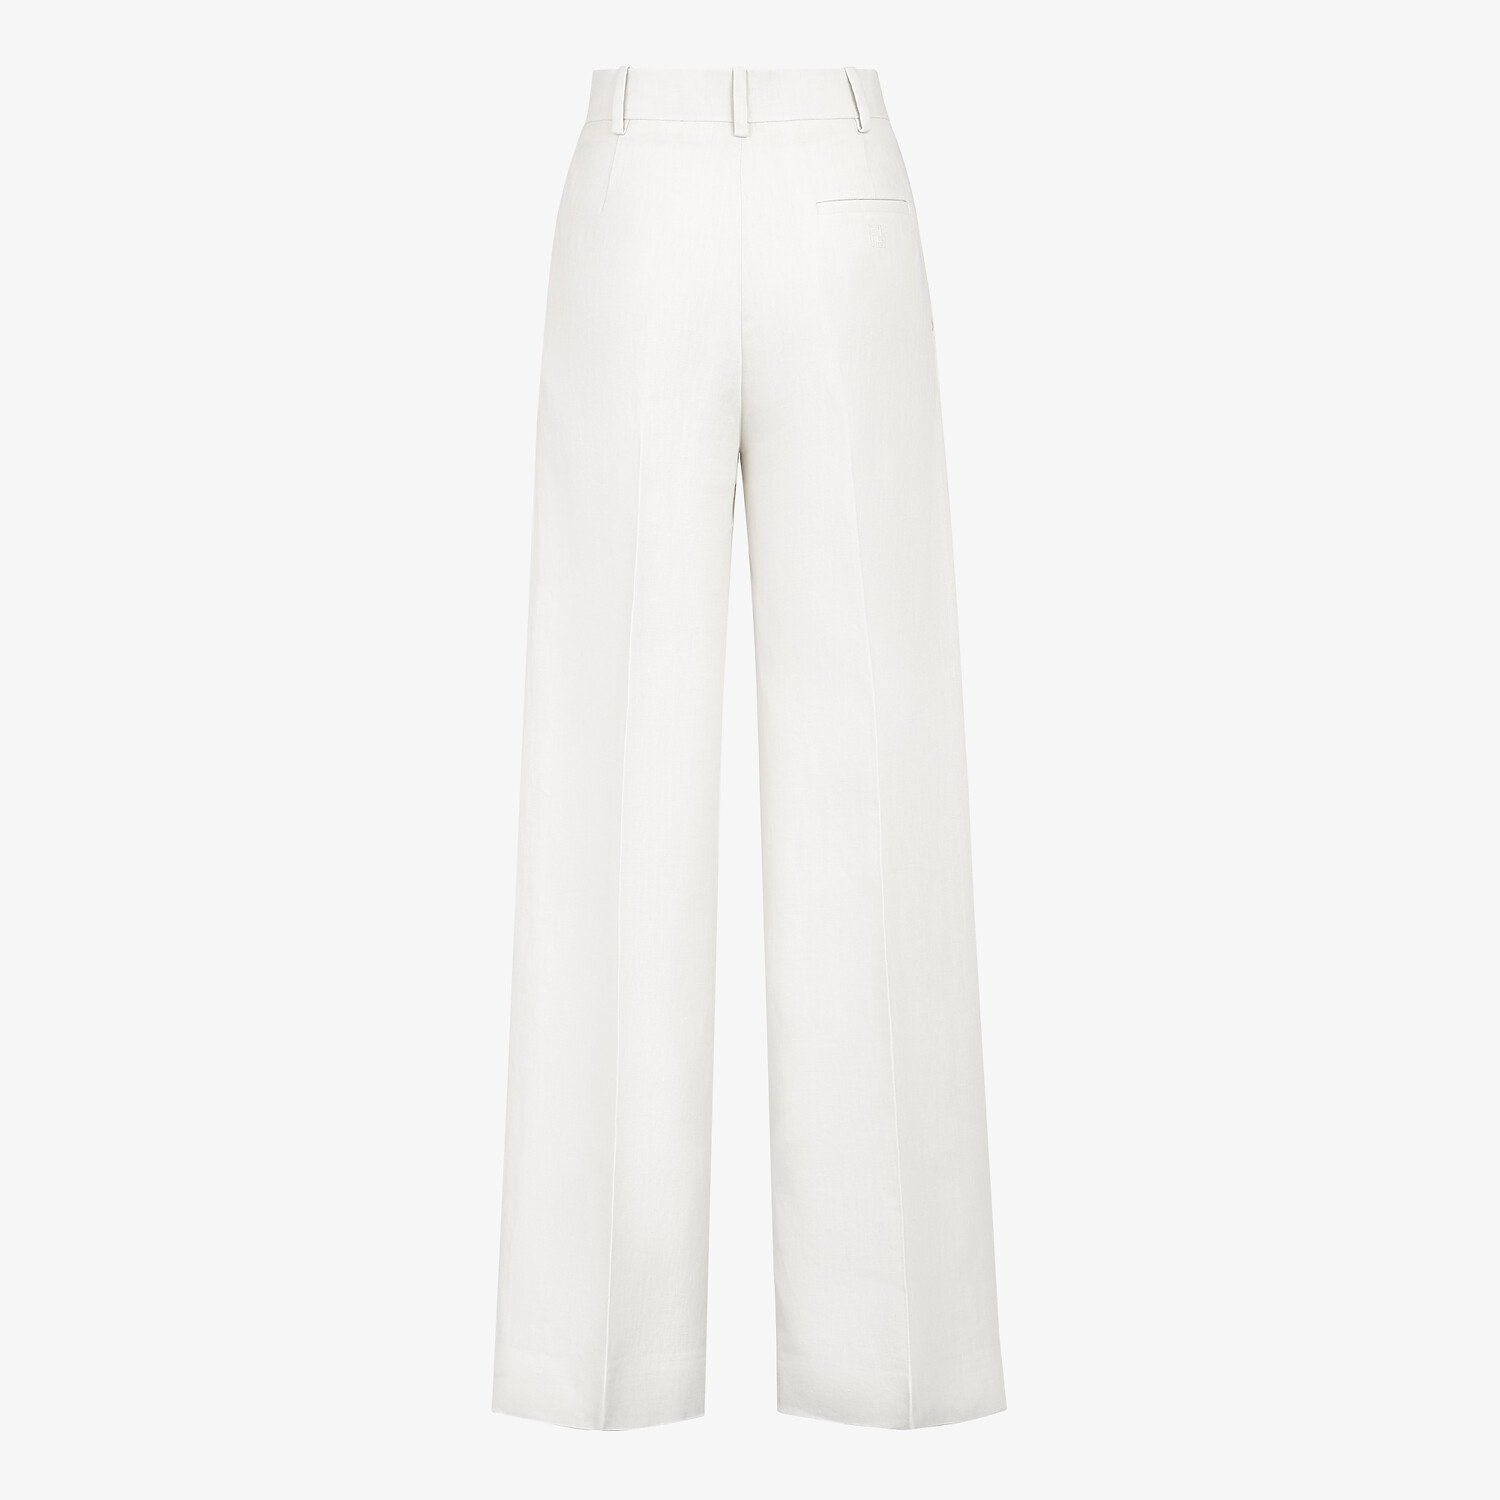 FENDI PANTS - White linen pants - view 2 detail